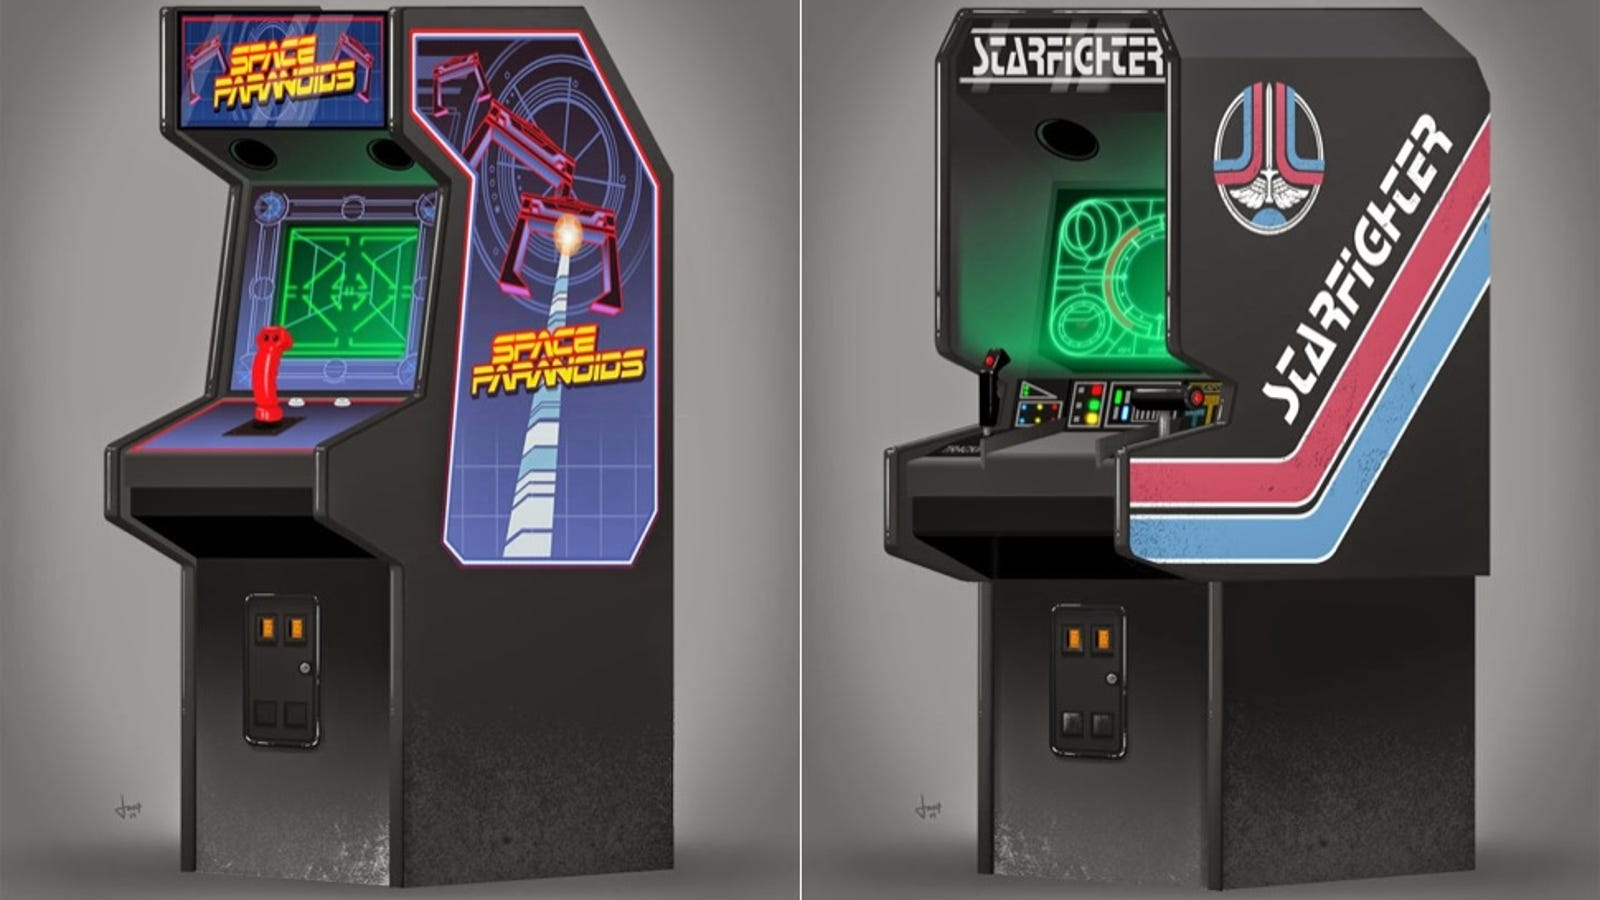 If The Arcade Game From Tron Existed It D Look A Lot Like